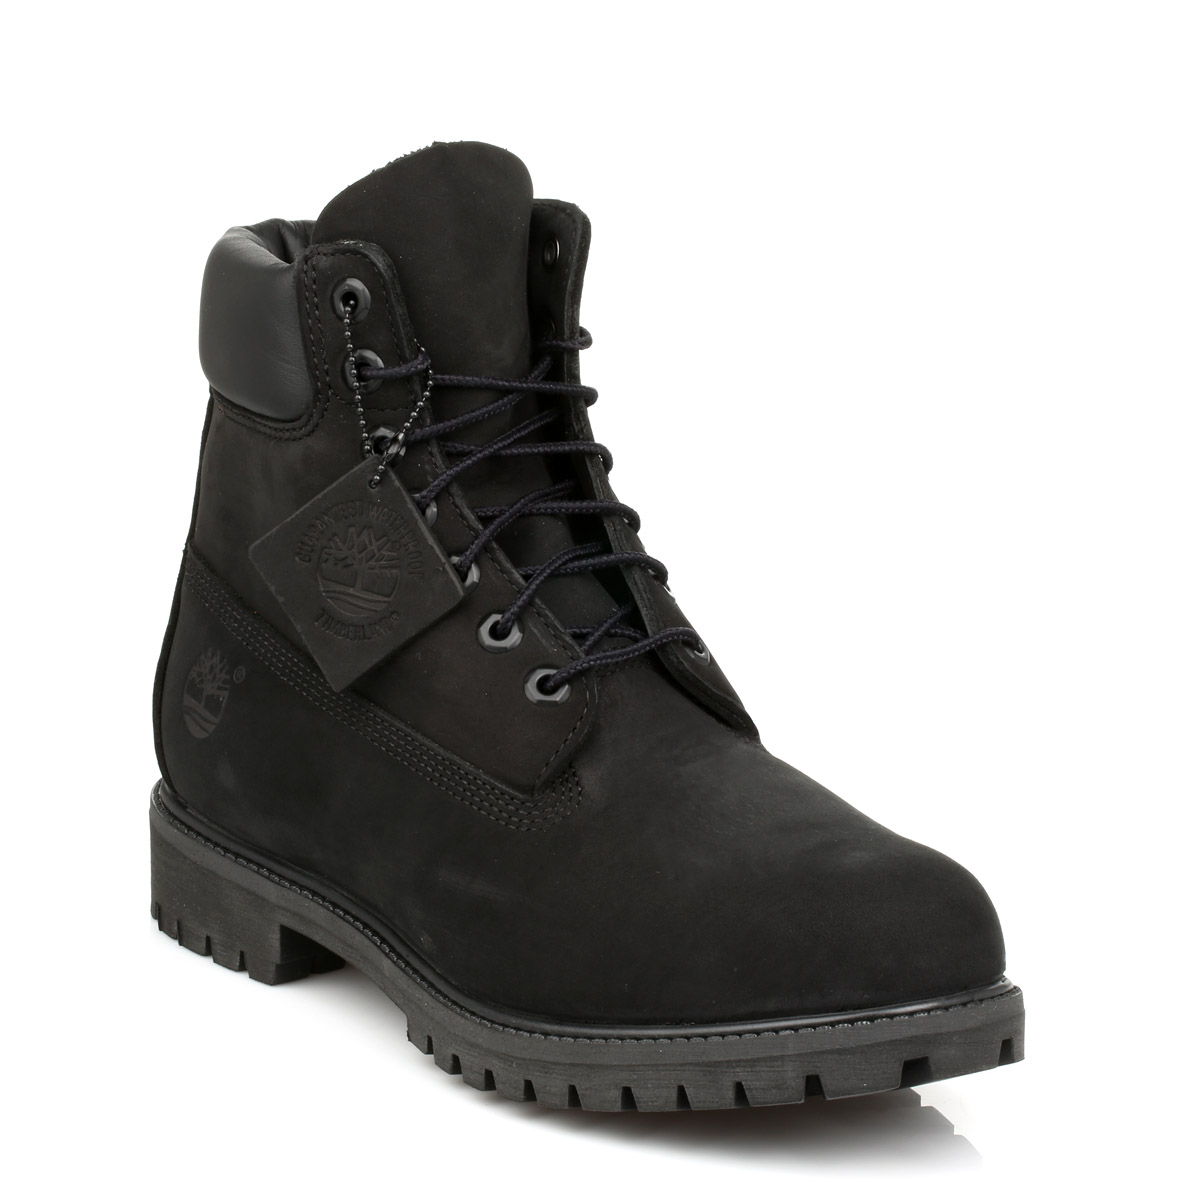 9d649ea3555f Details about Timberland Mens Black Premium 6 Inch Nubuck Leather Boots  Lace Up Winter Shoes